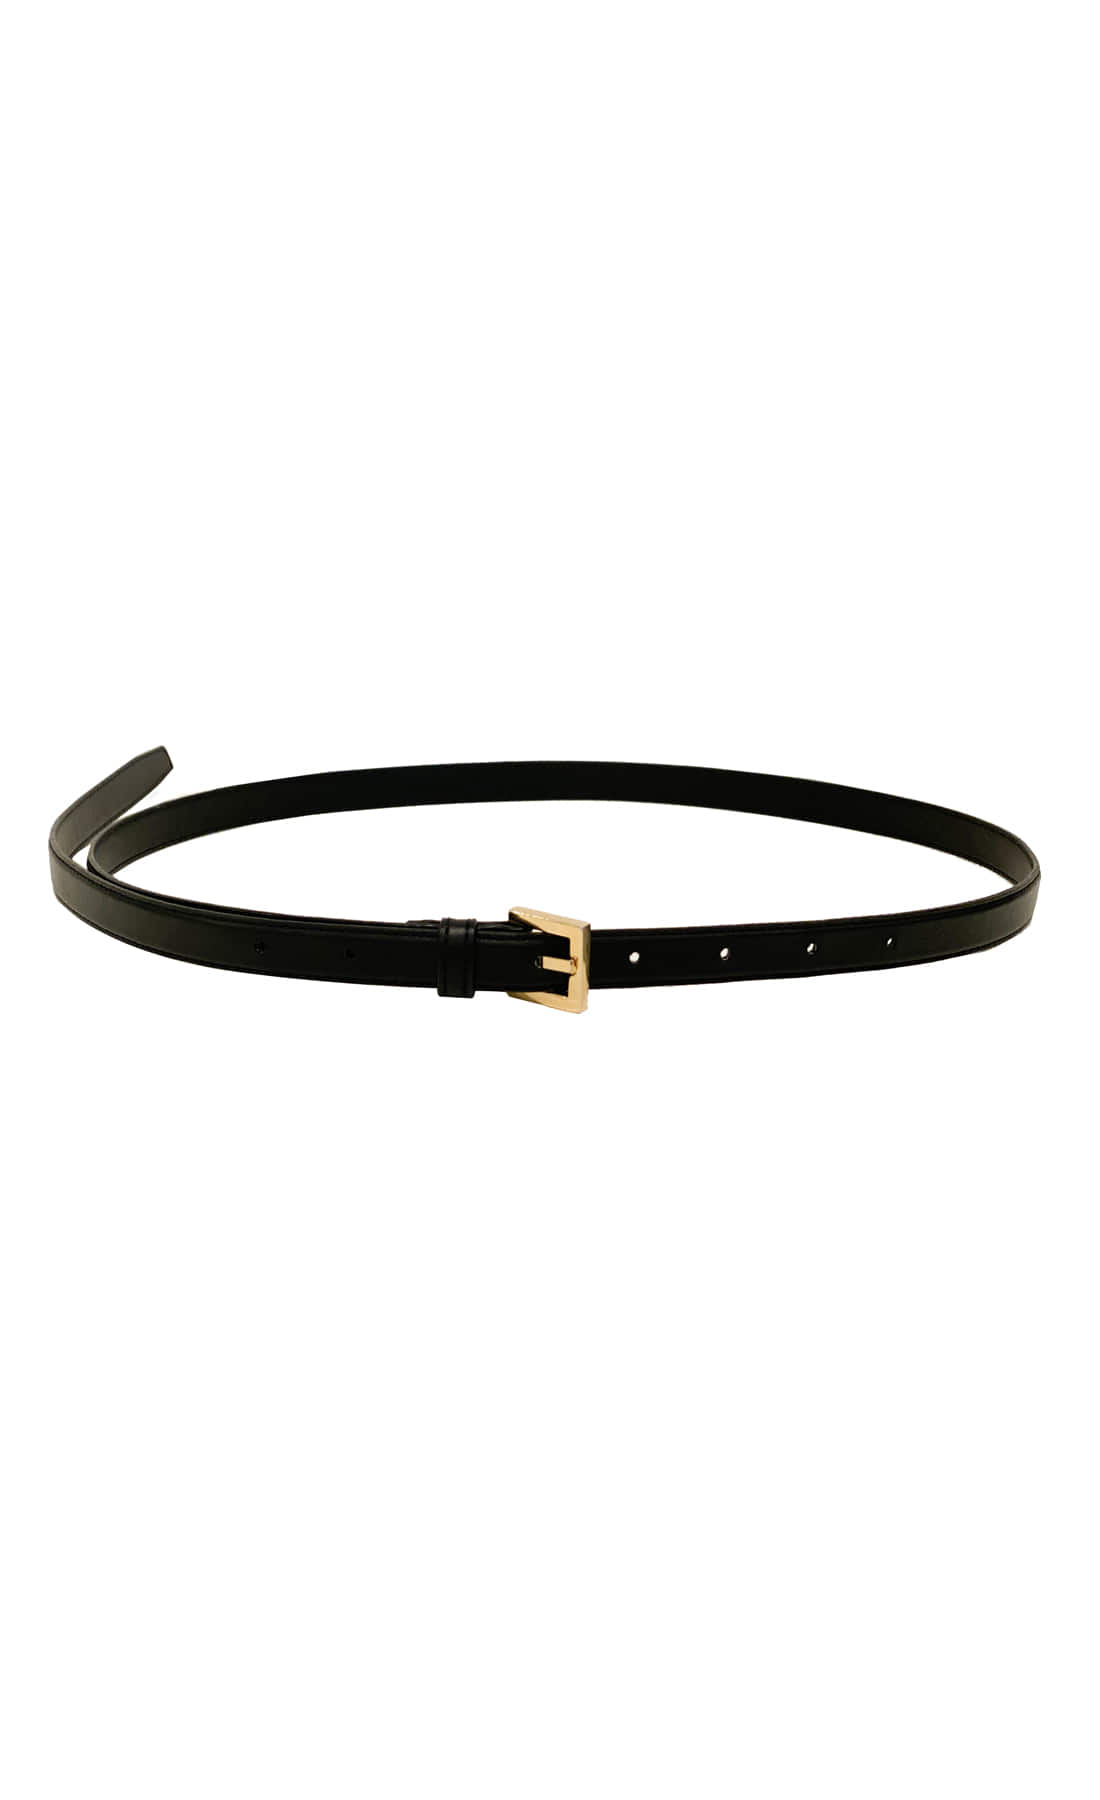 ITALY LEATHER CLASSIC BELT